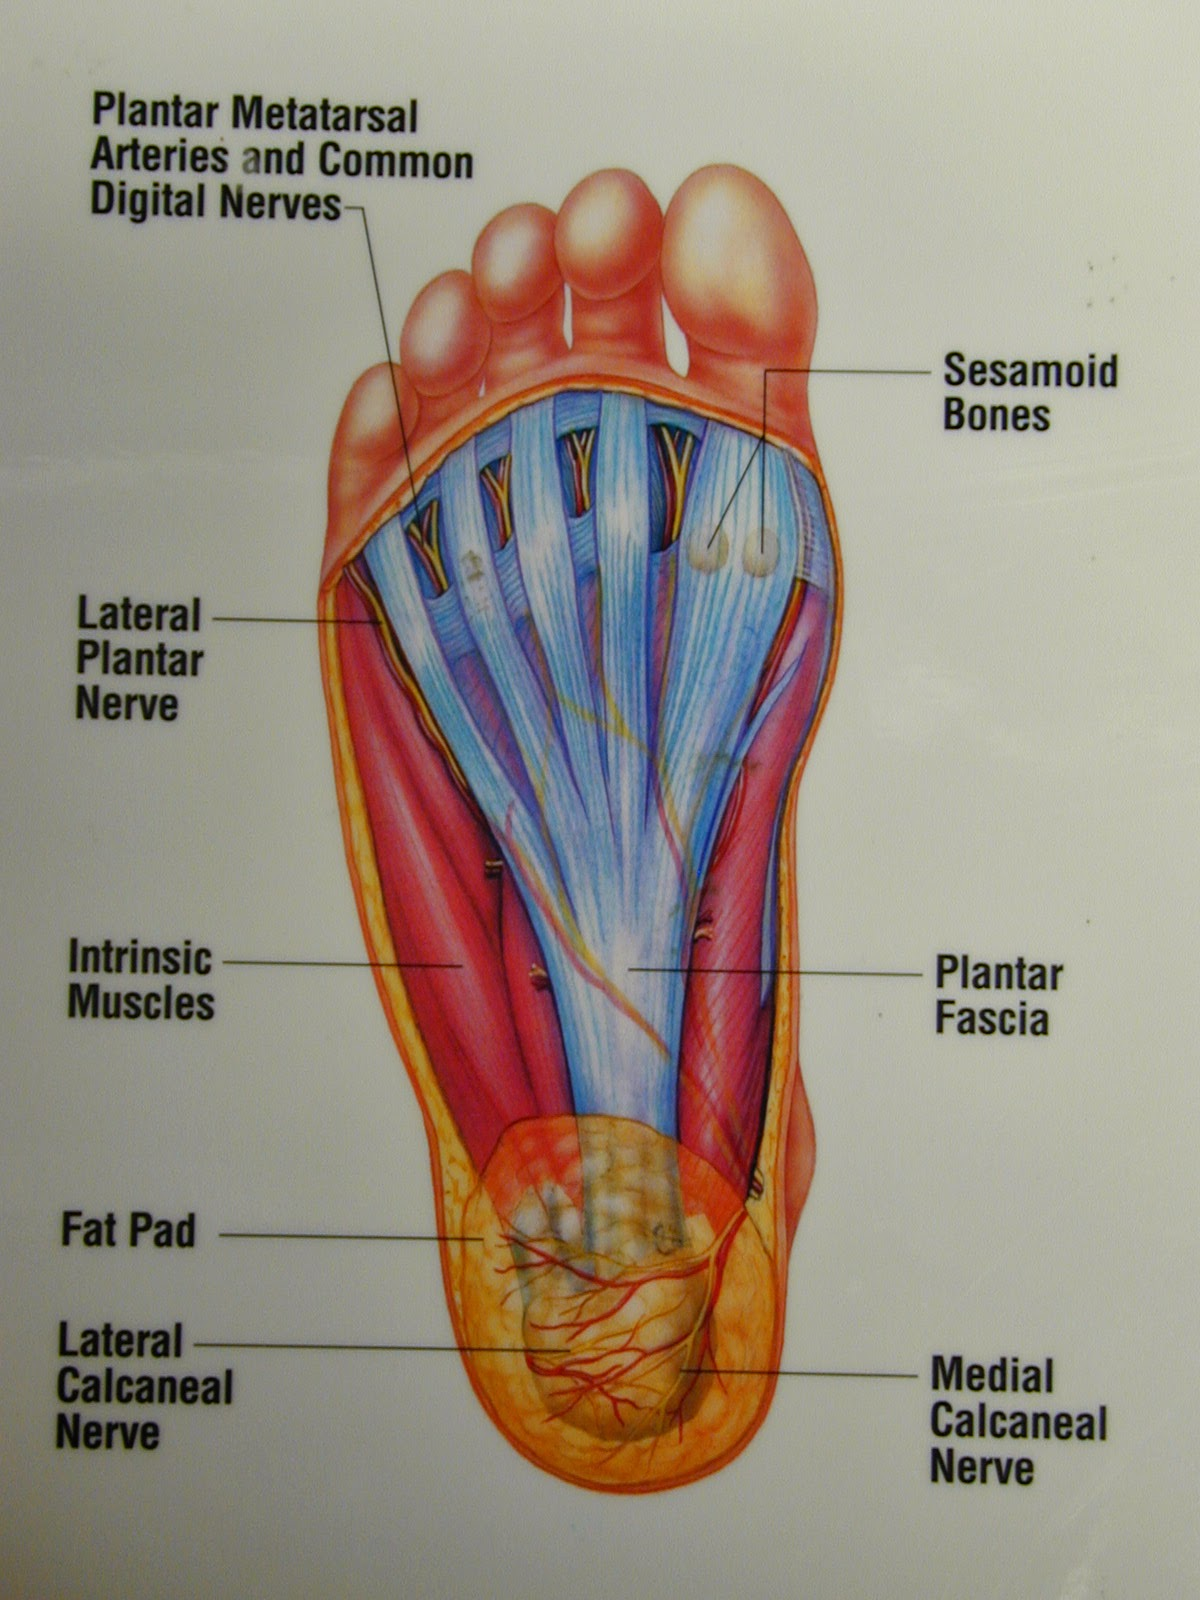 medium resolution of plantar fasciitis is the most common cause of heel pain the pain is caused by inflammation of the tissue along the bottom of your foot that connects your